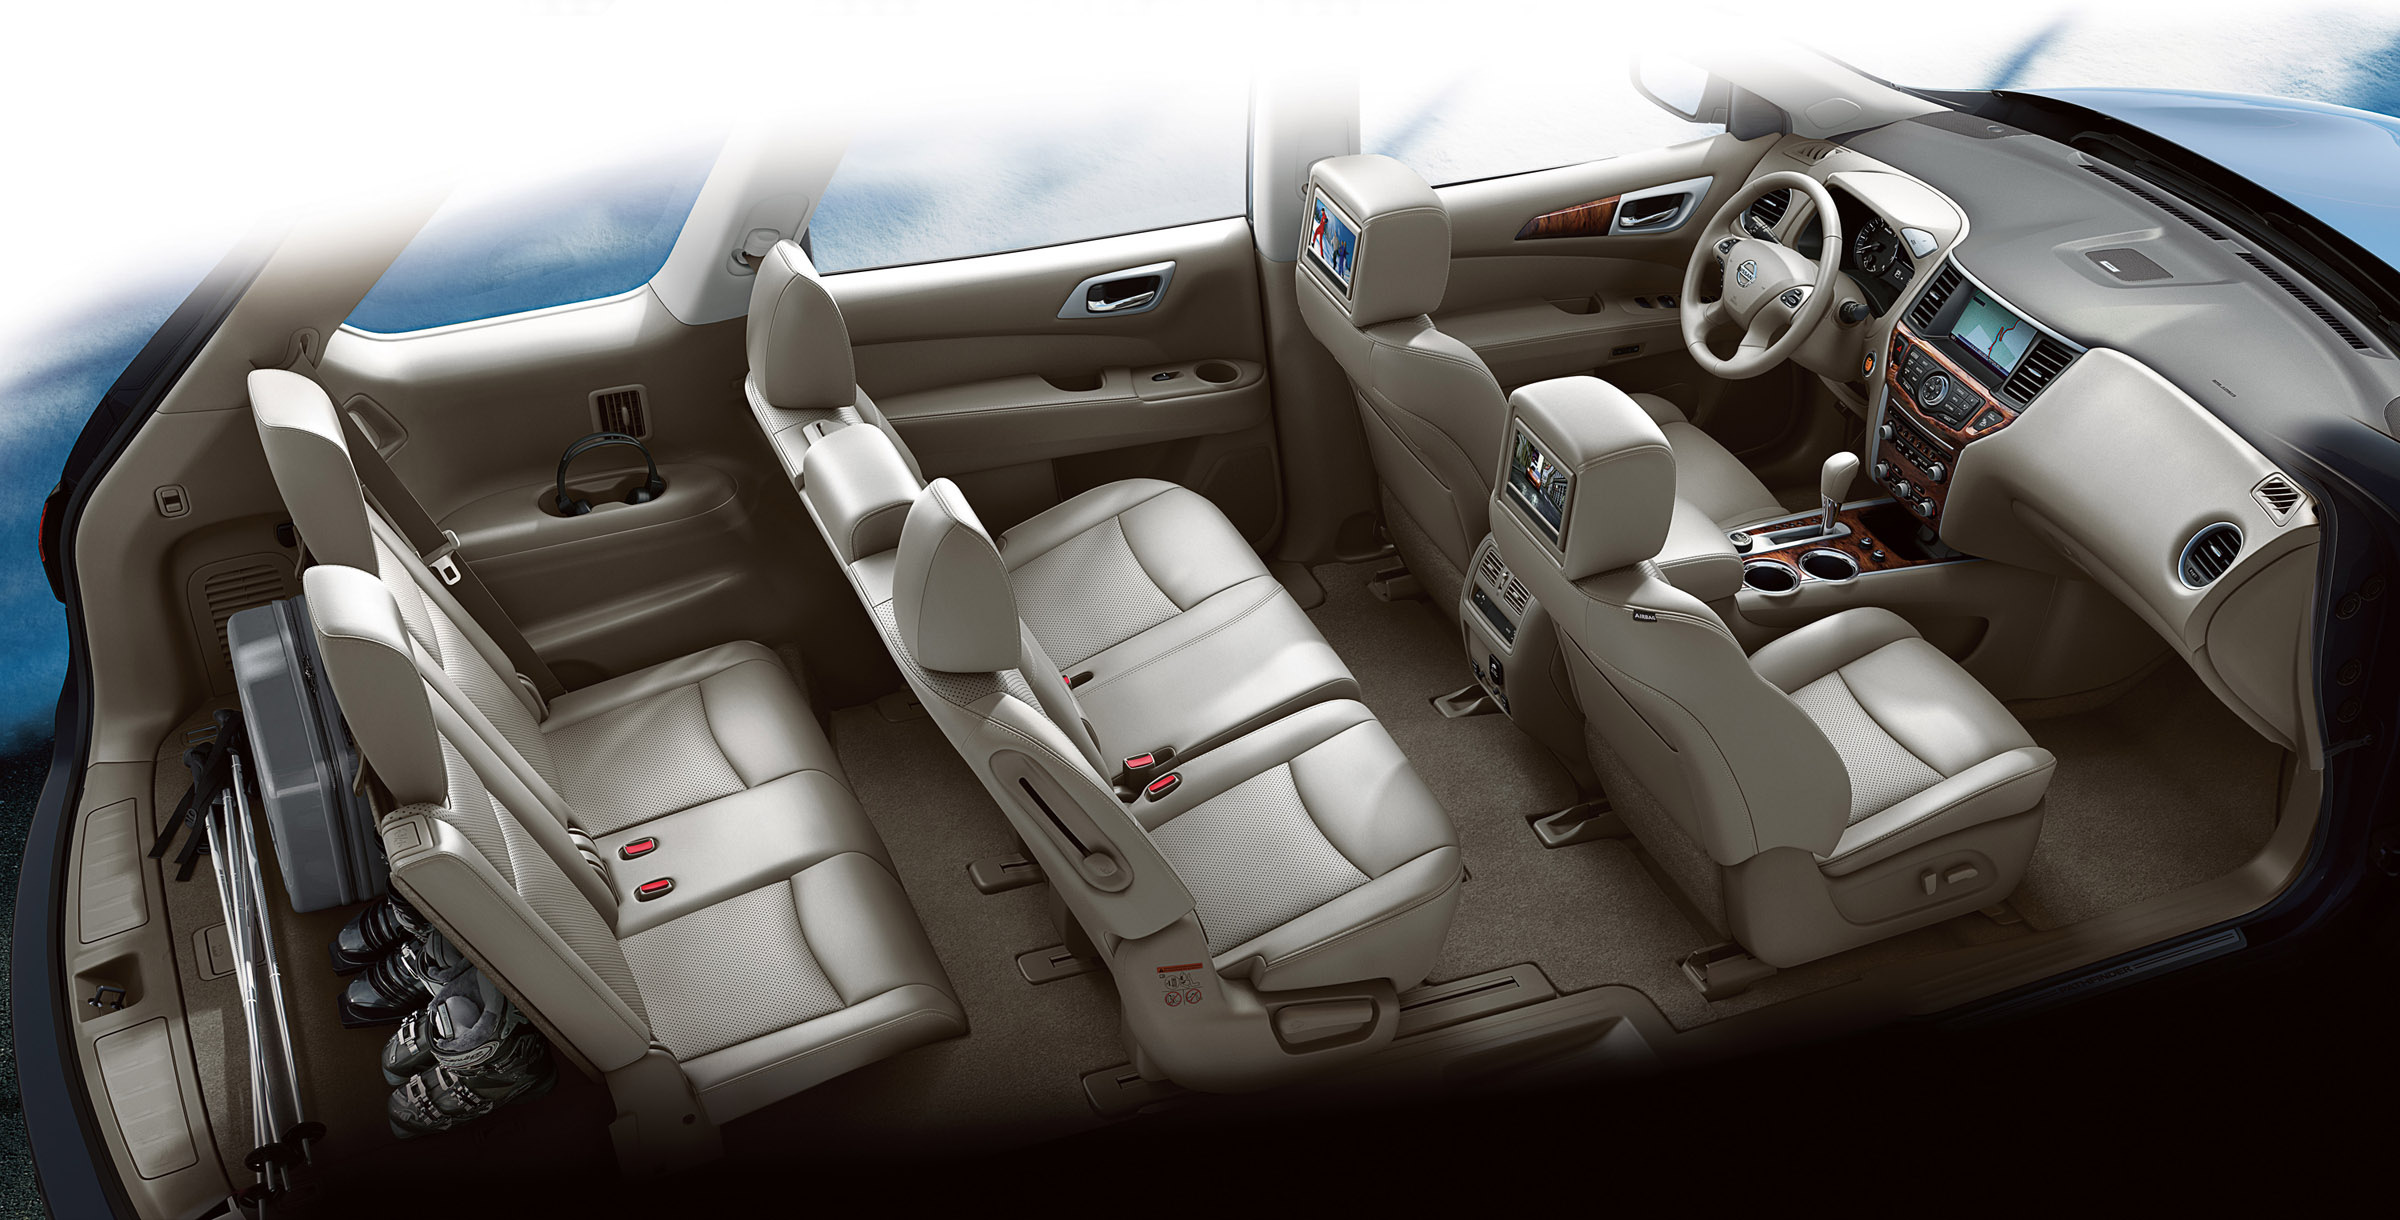 Nissan Pathfinder Concept  Picture 63069